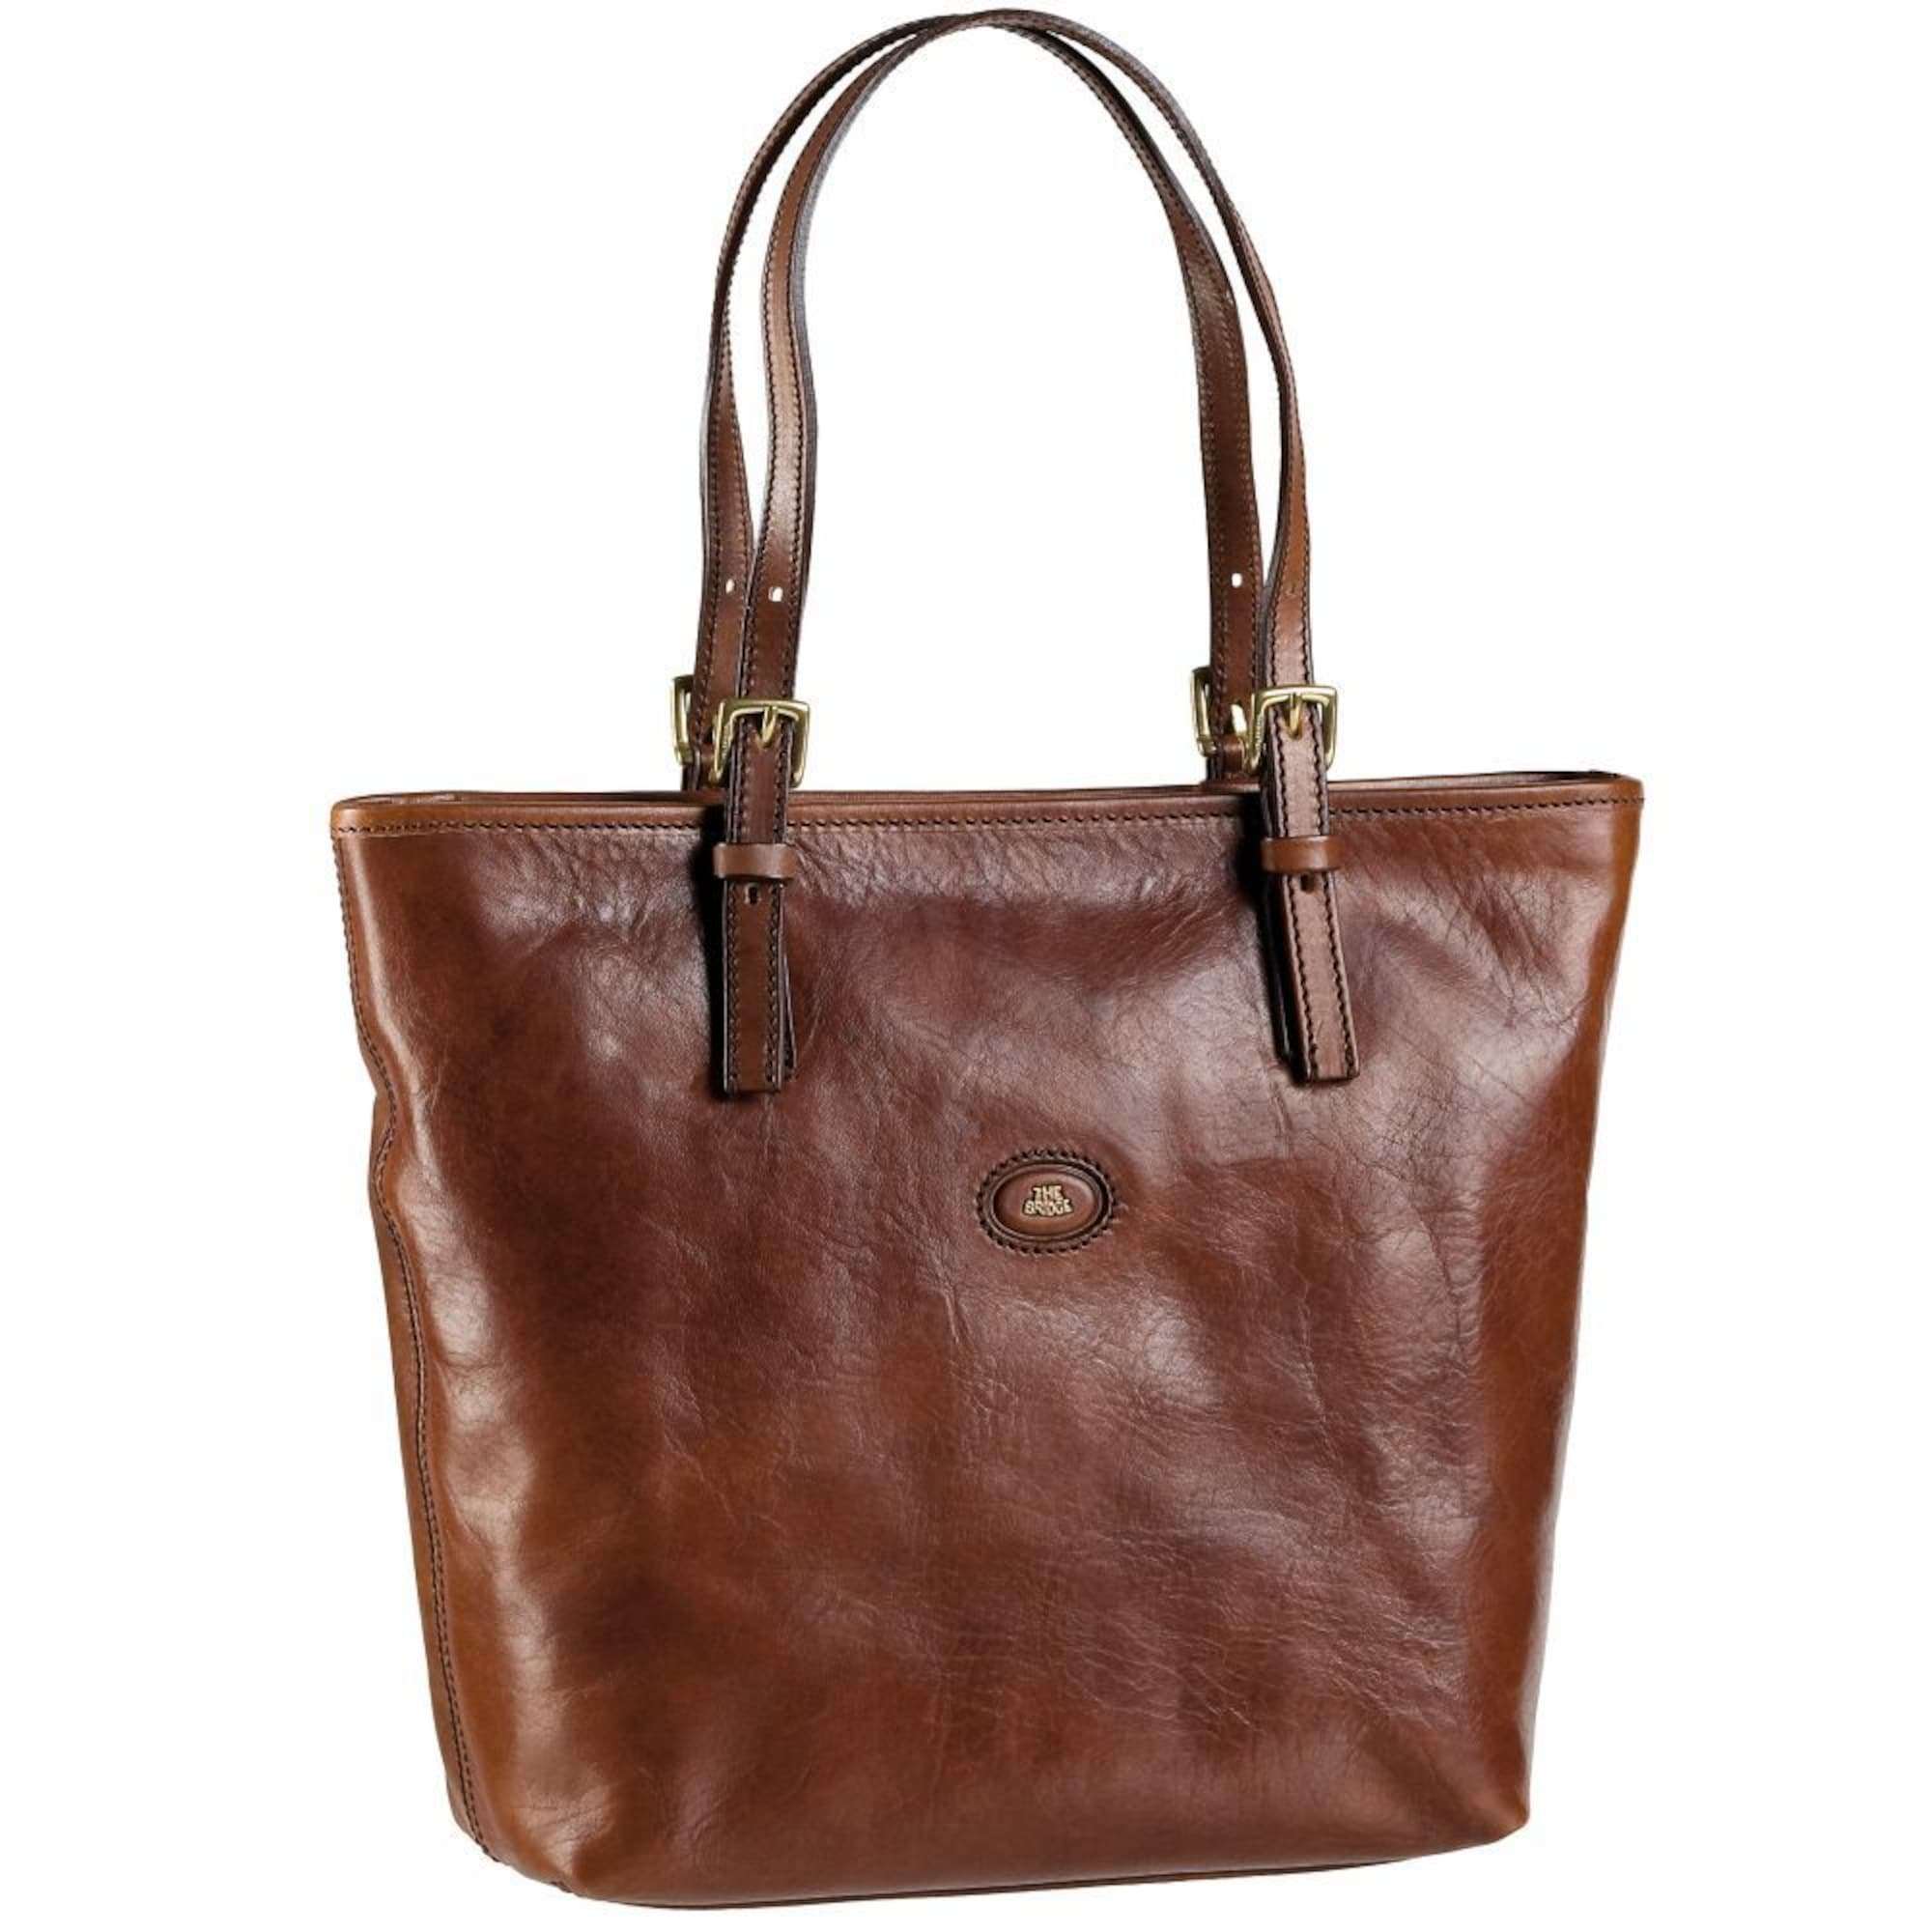 Leder Shopper 'Story Donna' | Taschen > Handtaschen > Shopper | Braun | The Bridge